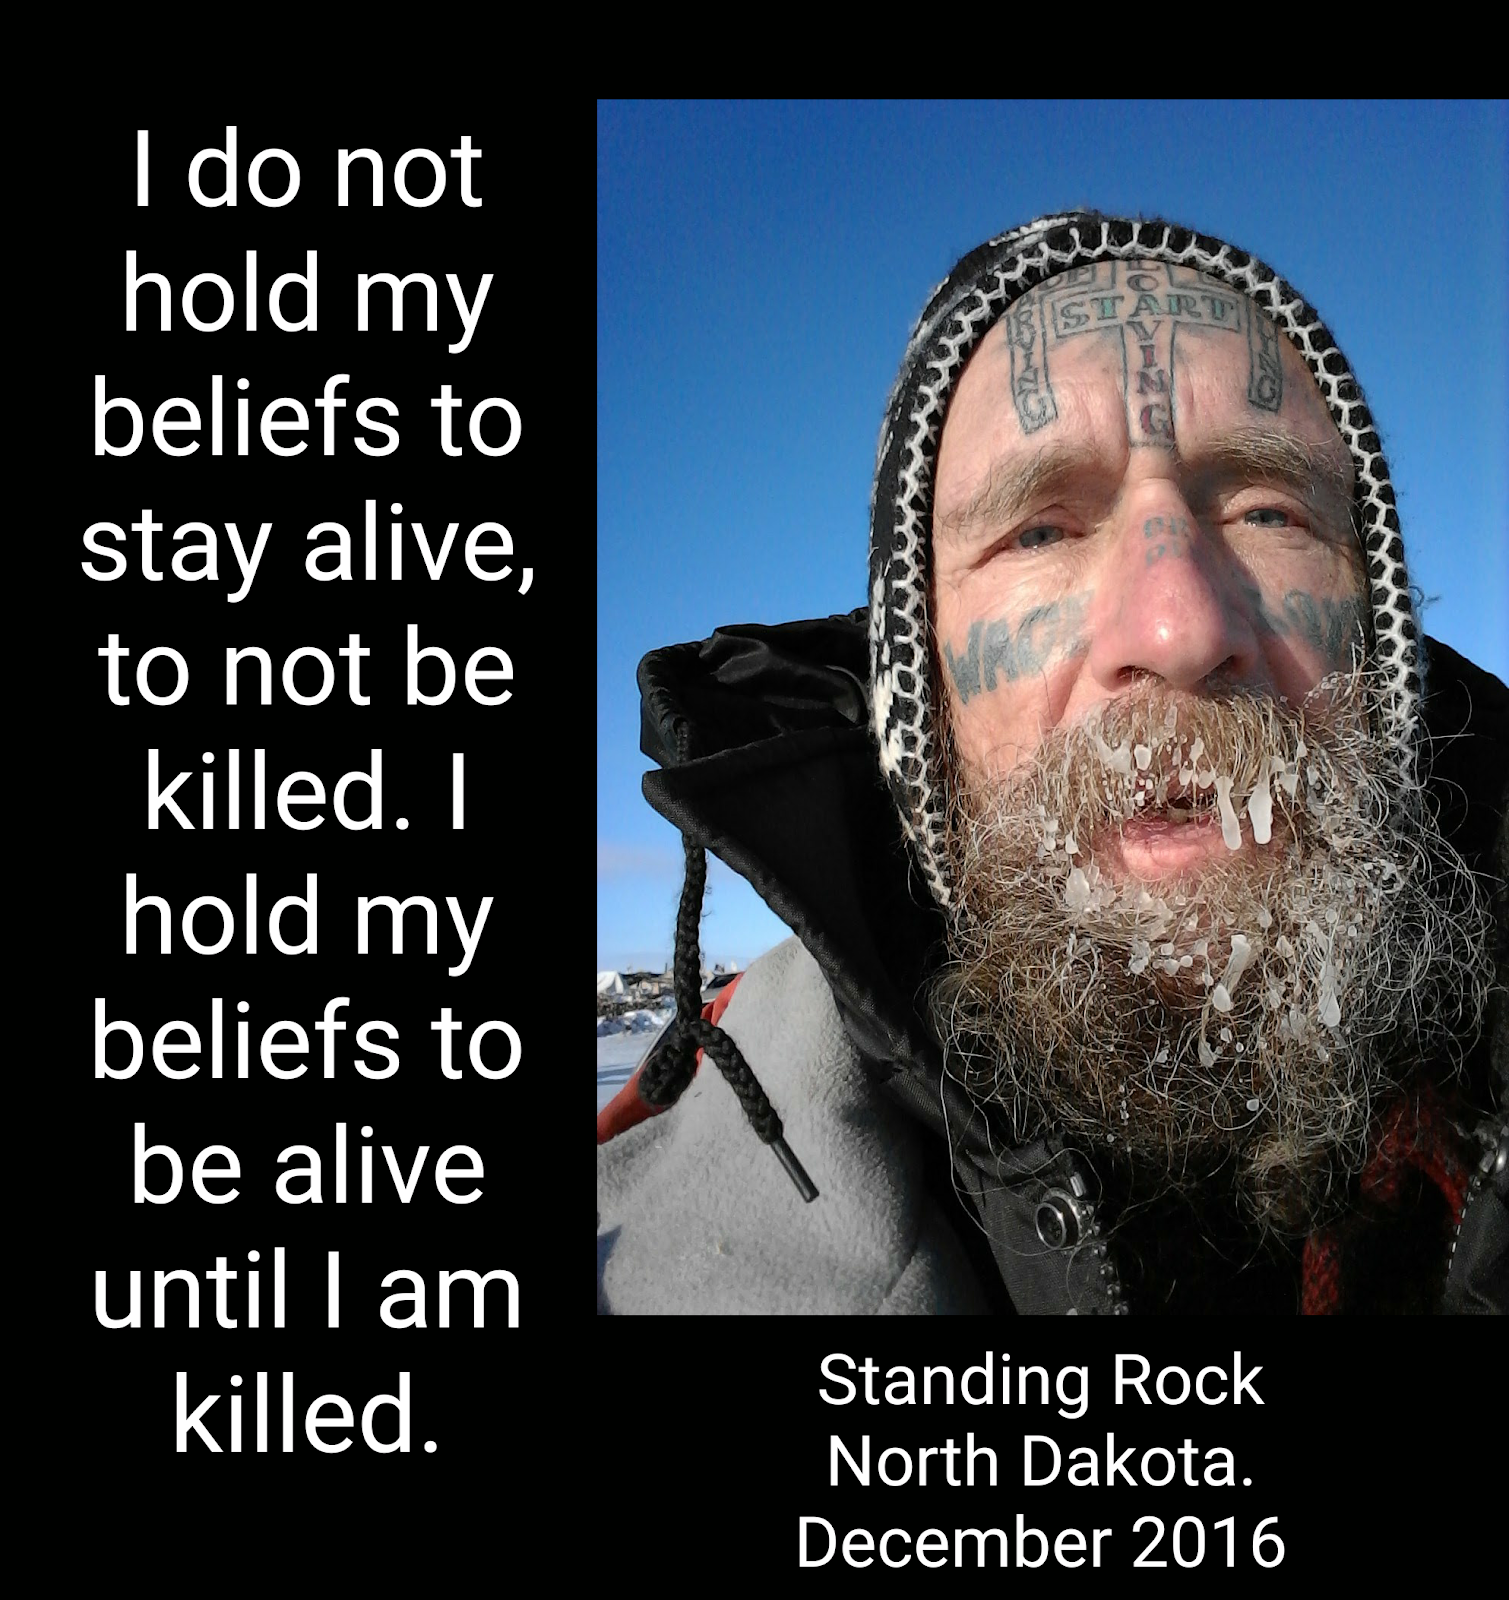 I hold my beliefs to be alive